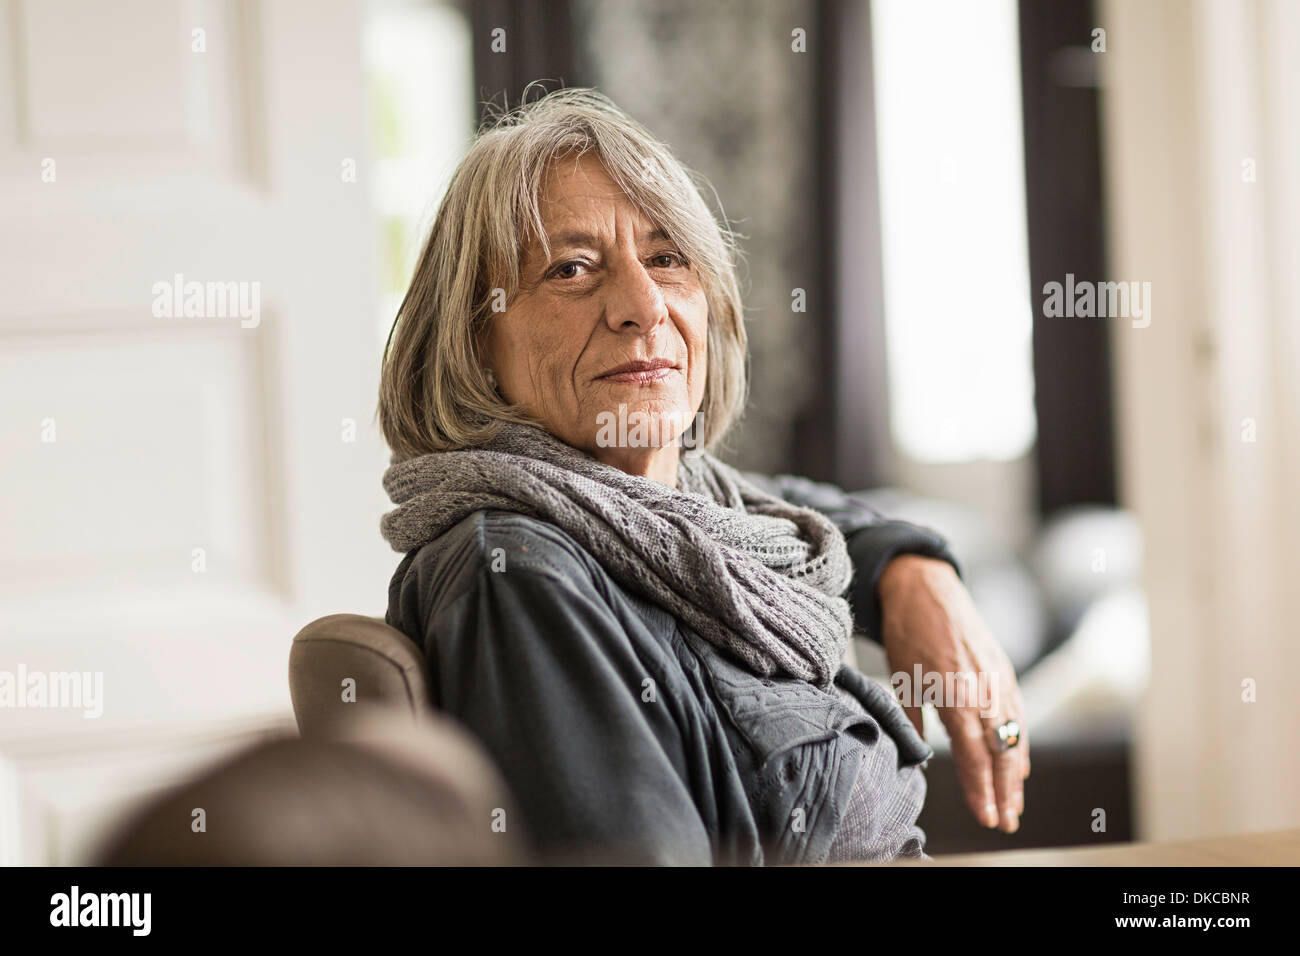 Portrait of senior woman with grey hair wearing scarf - Stock Image